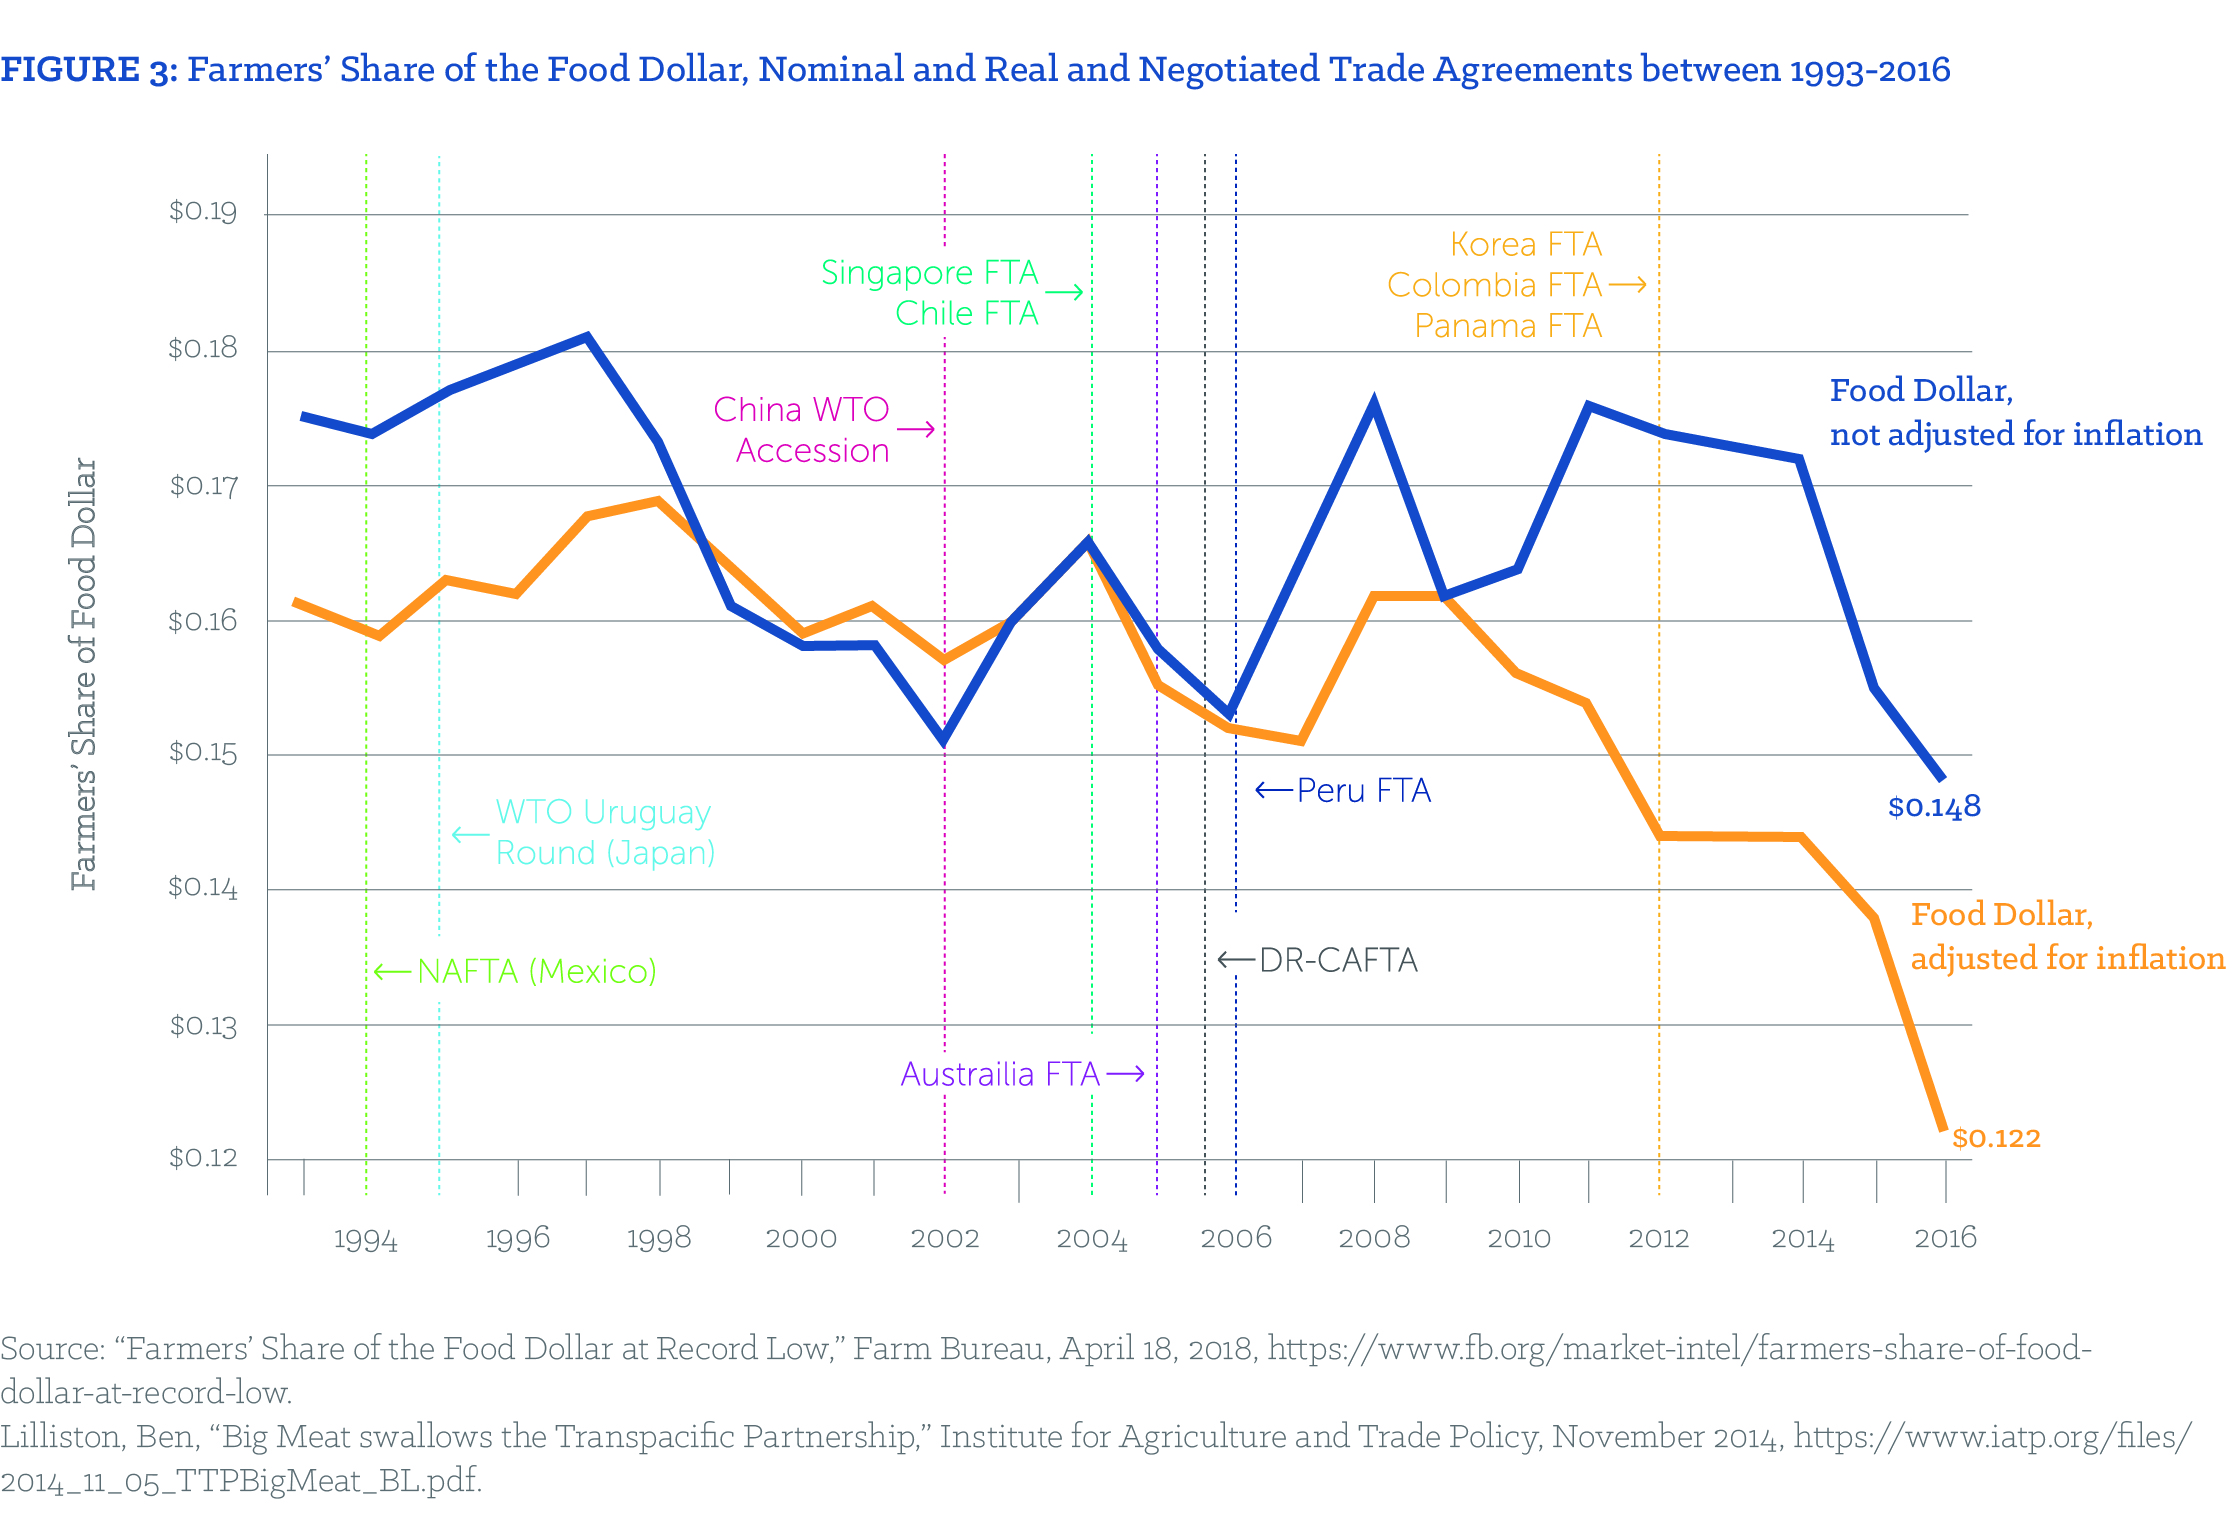 FIGURE 3: Farmers' Share of the Food Dollar, Nominal and Real and Negotiated Trade Agreements between 1993-2016